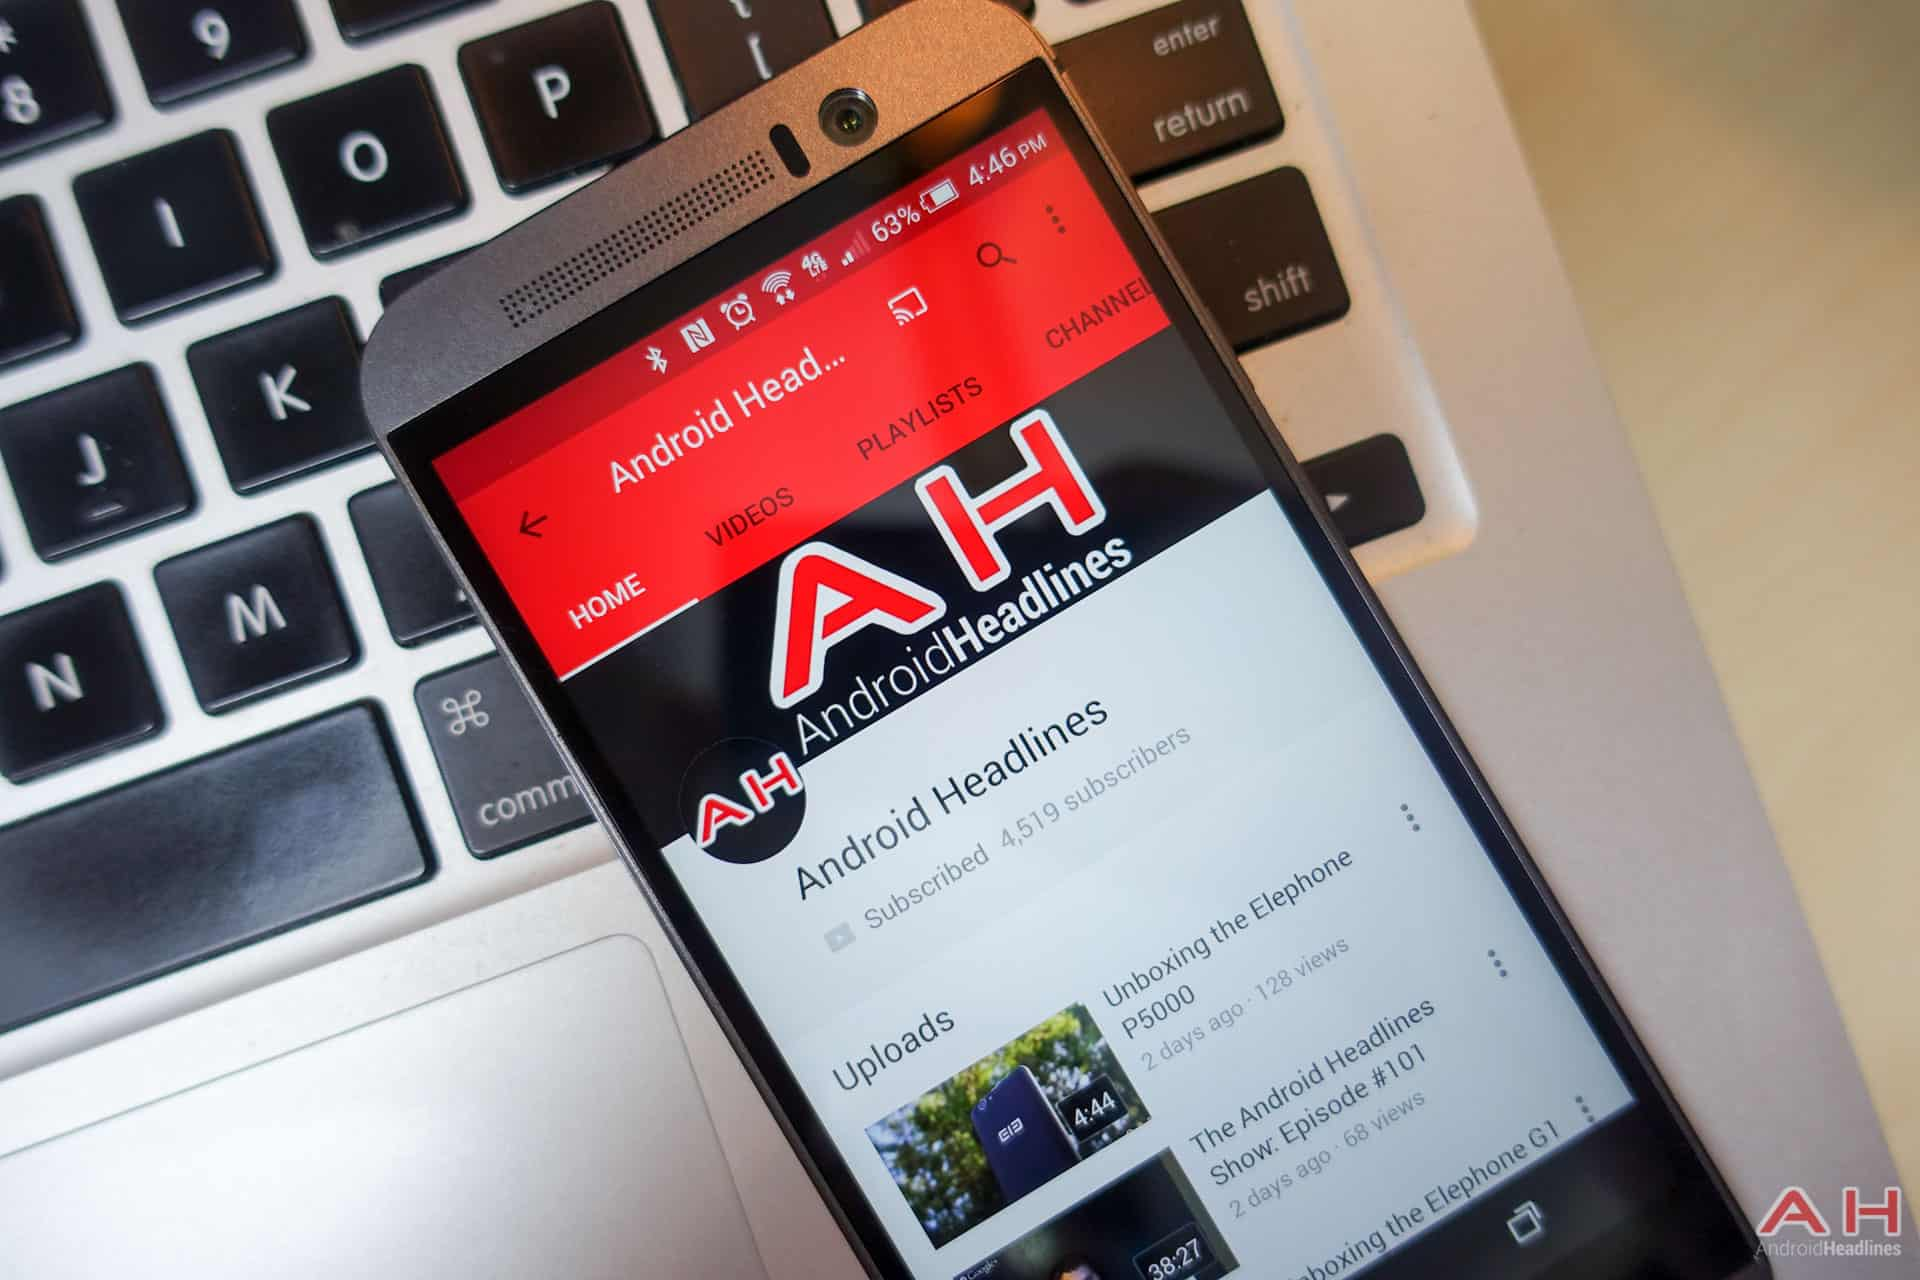 HTC-One-M9-Getting-Started-AH-3